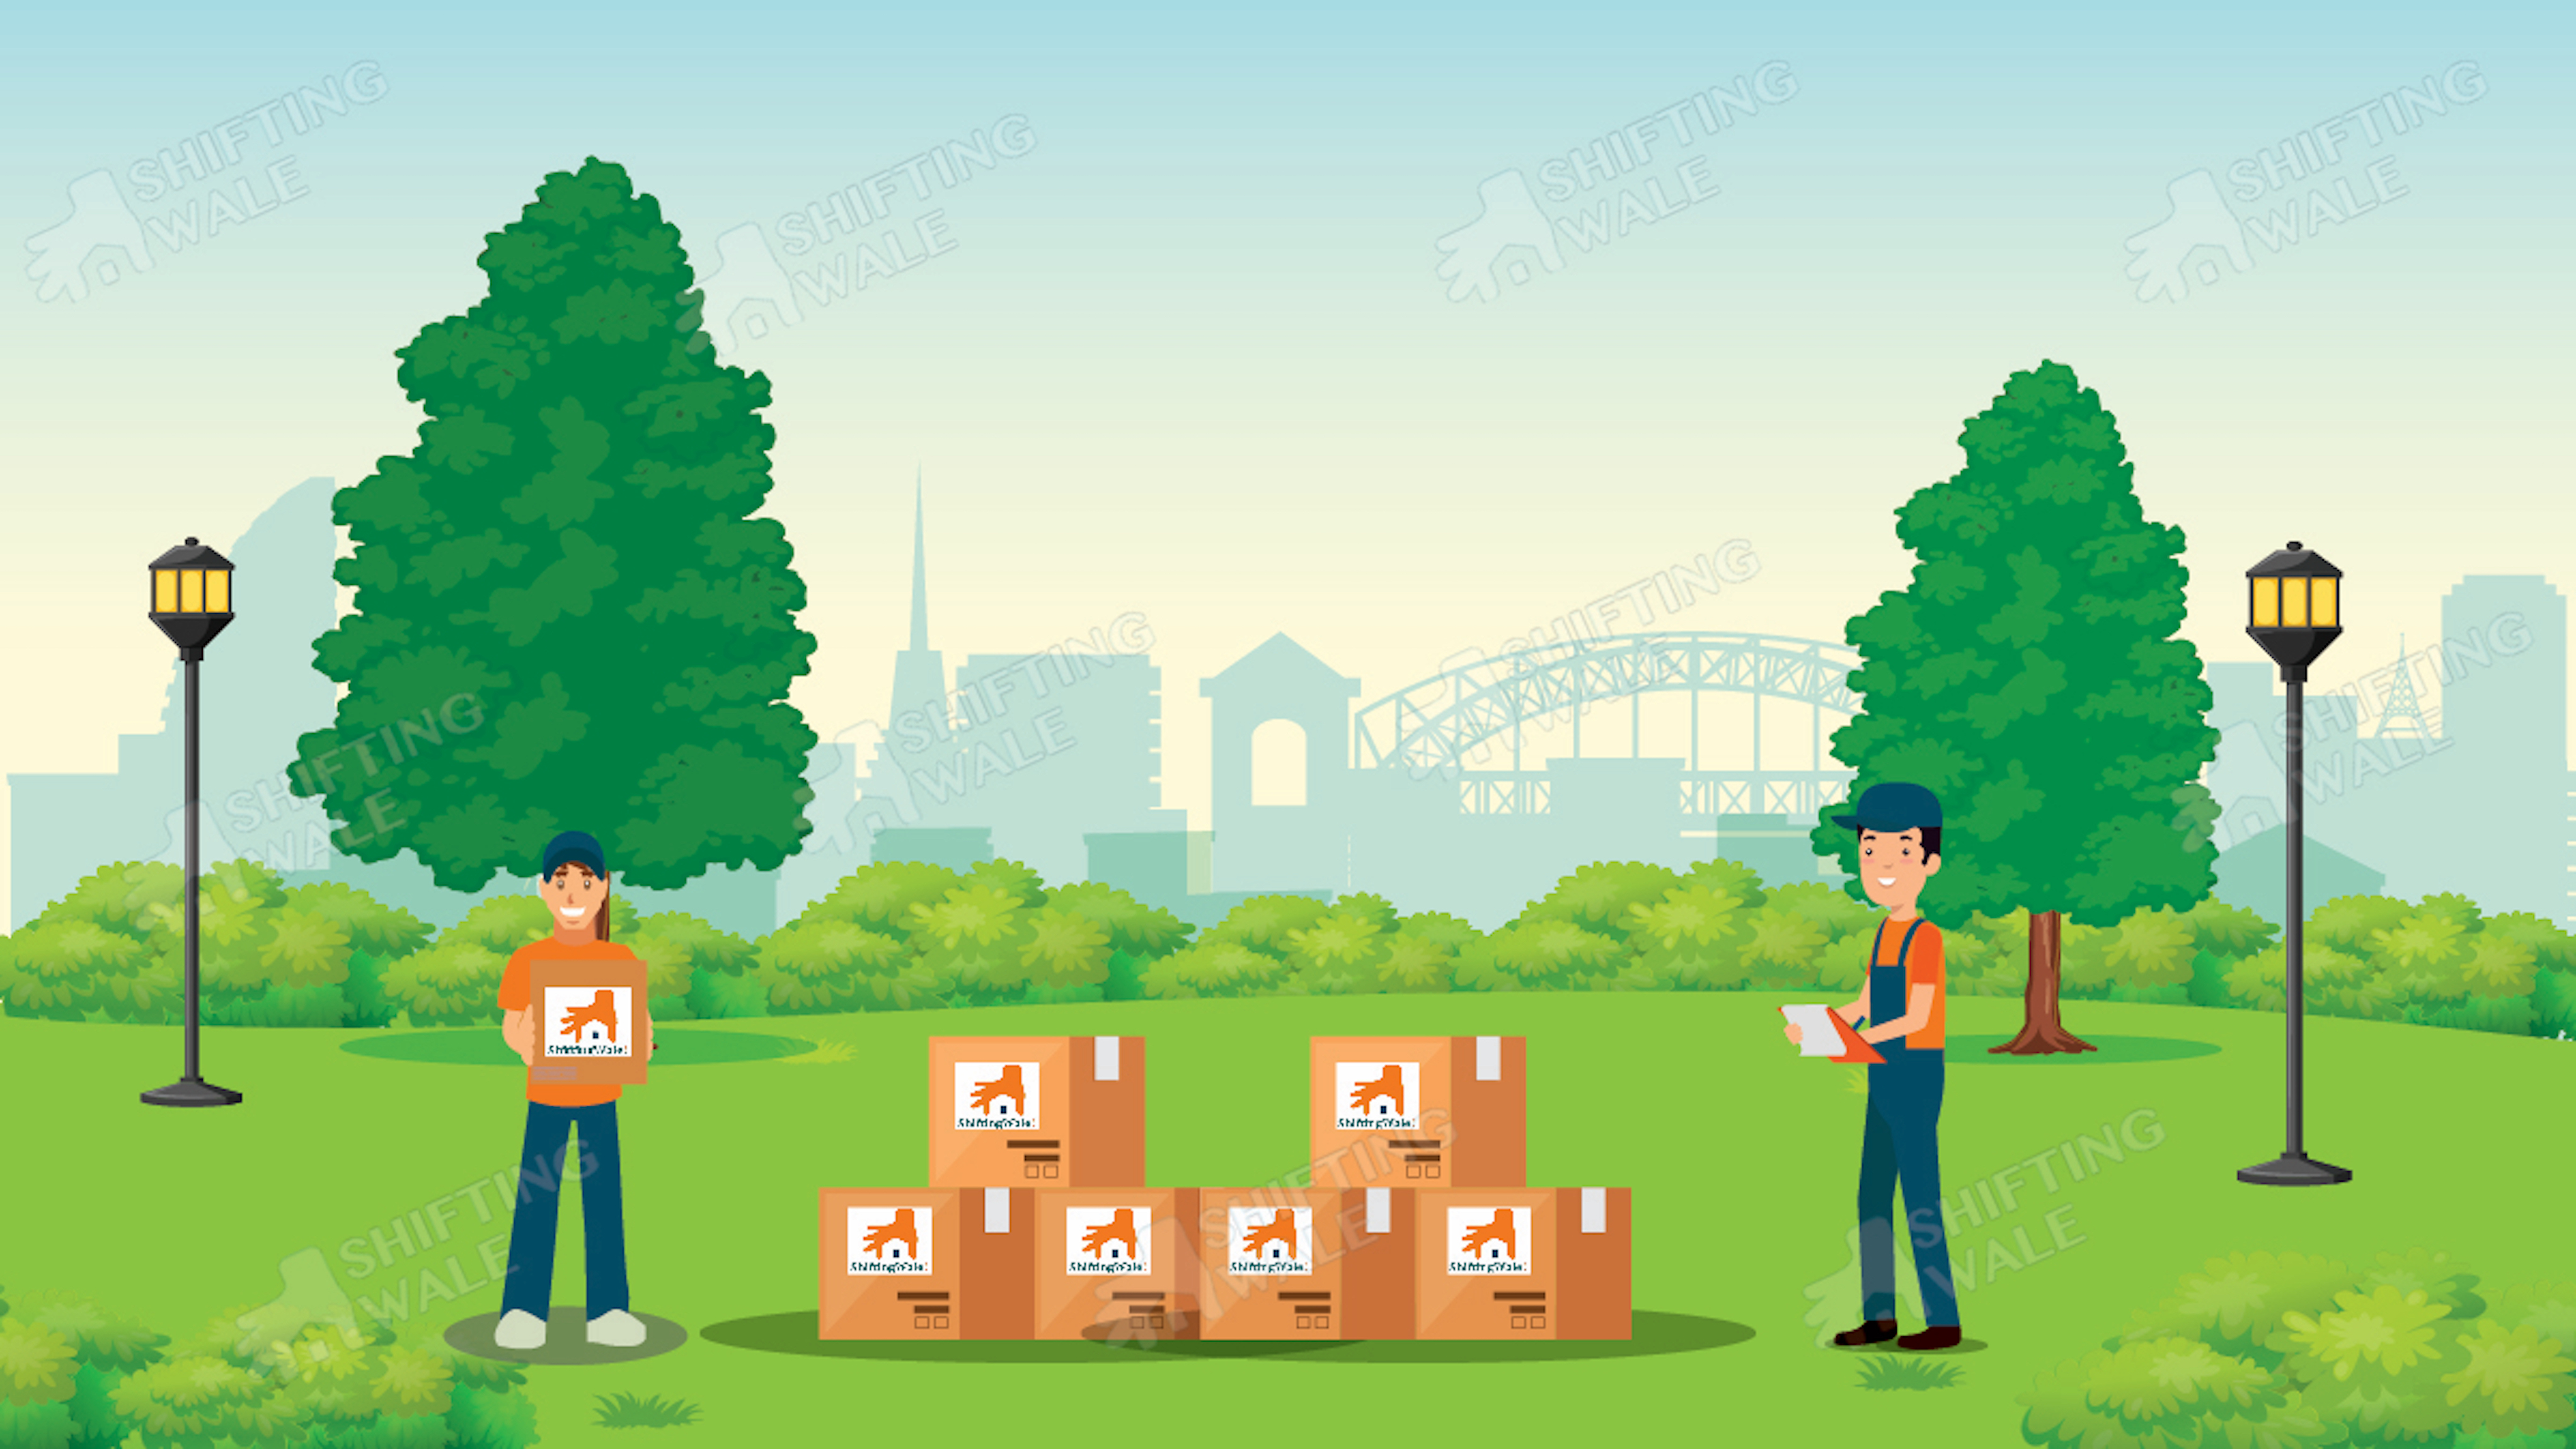 Kochi to Ranchi Trusted Packers and Movers Get Free Quotation with Best Price